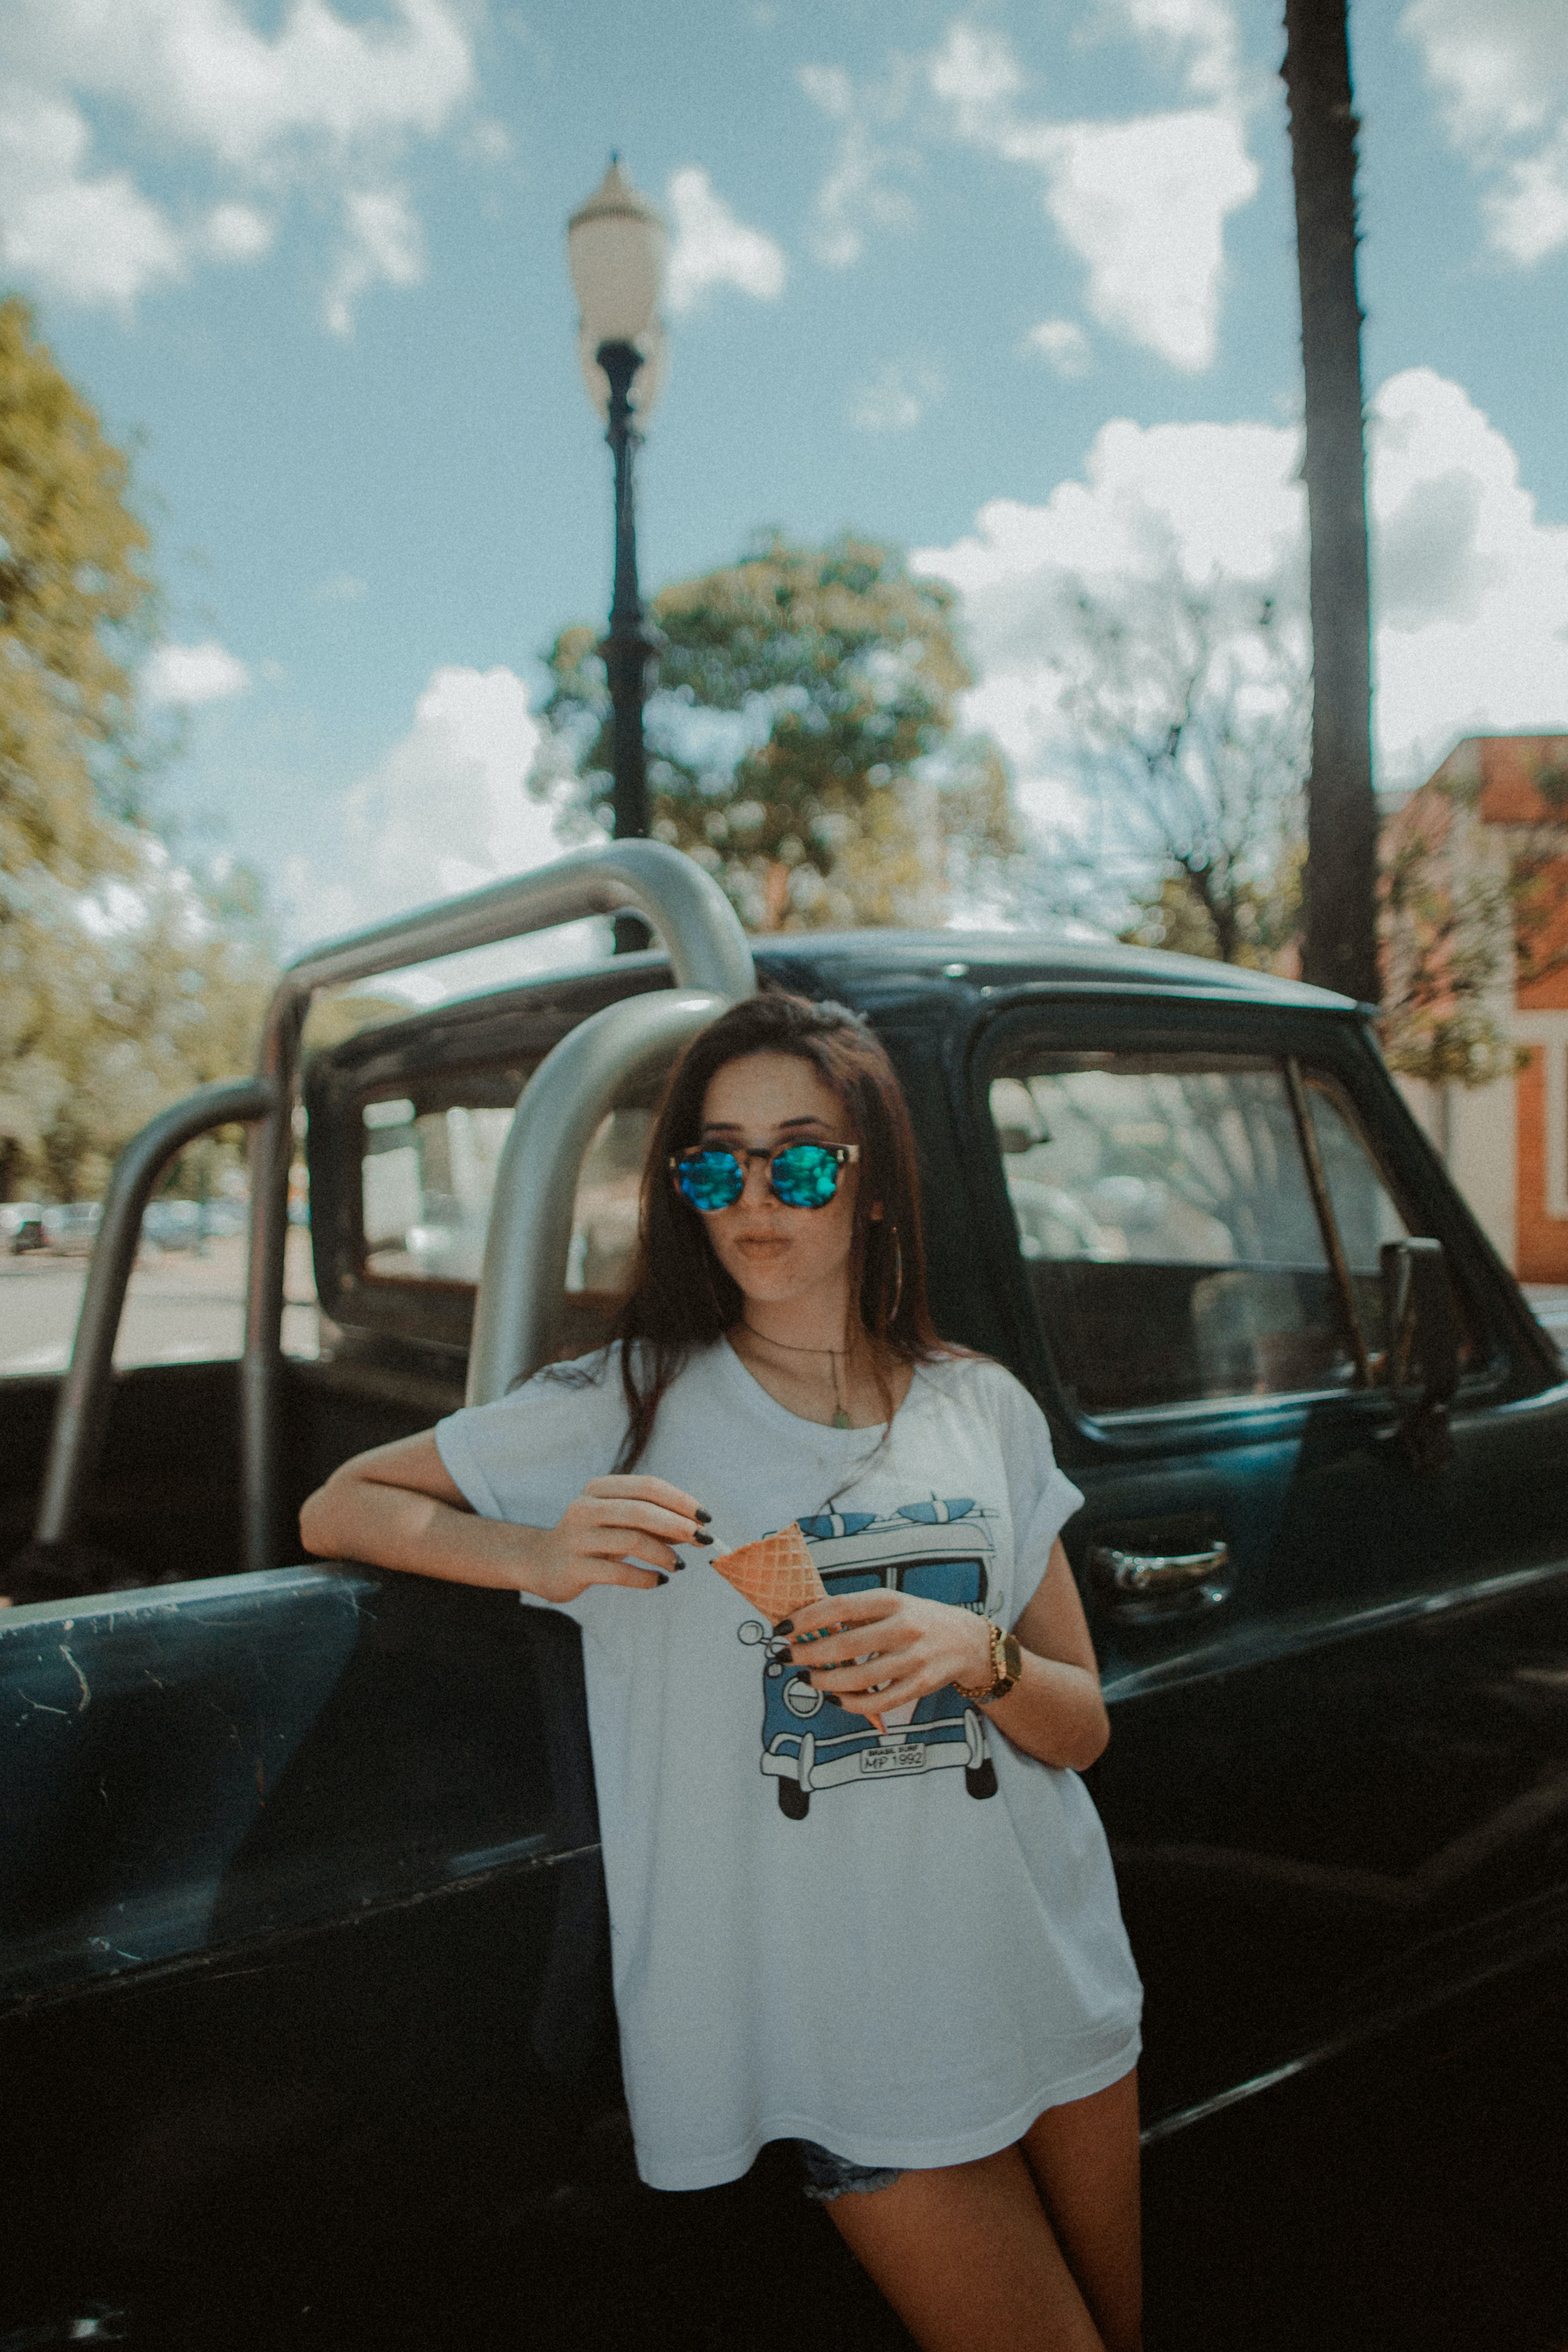 woman holding ice cream cone and leaning on pickup truck